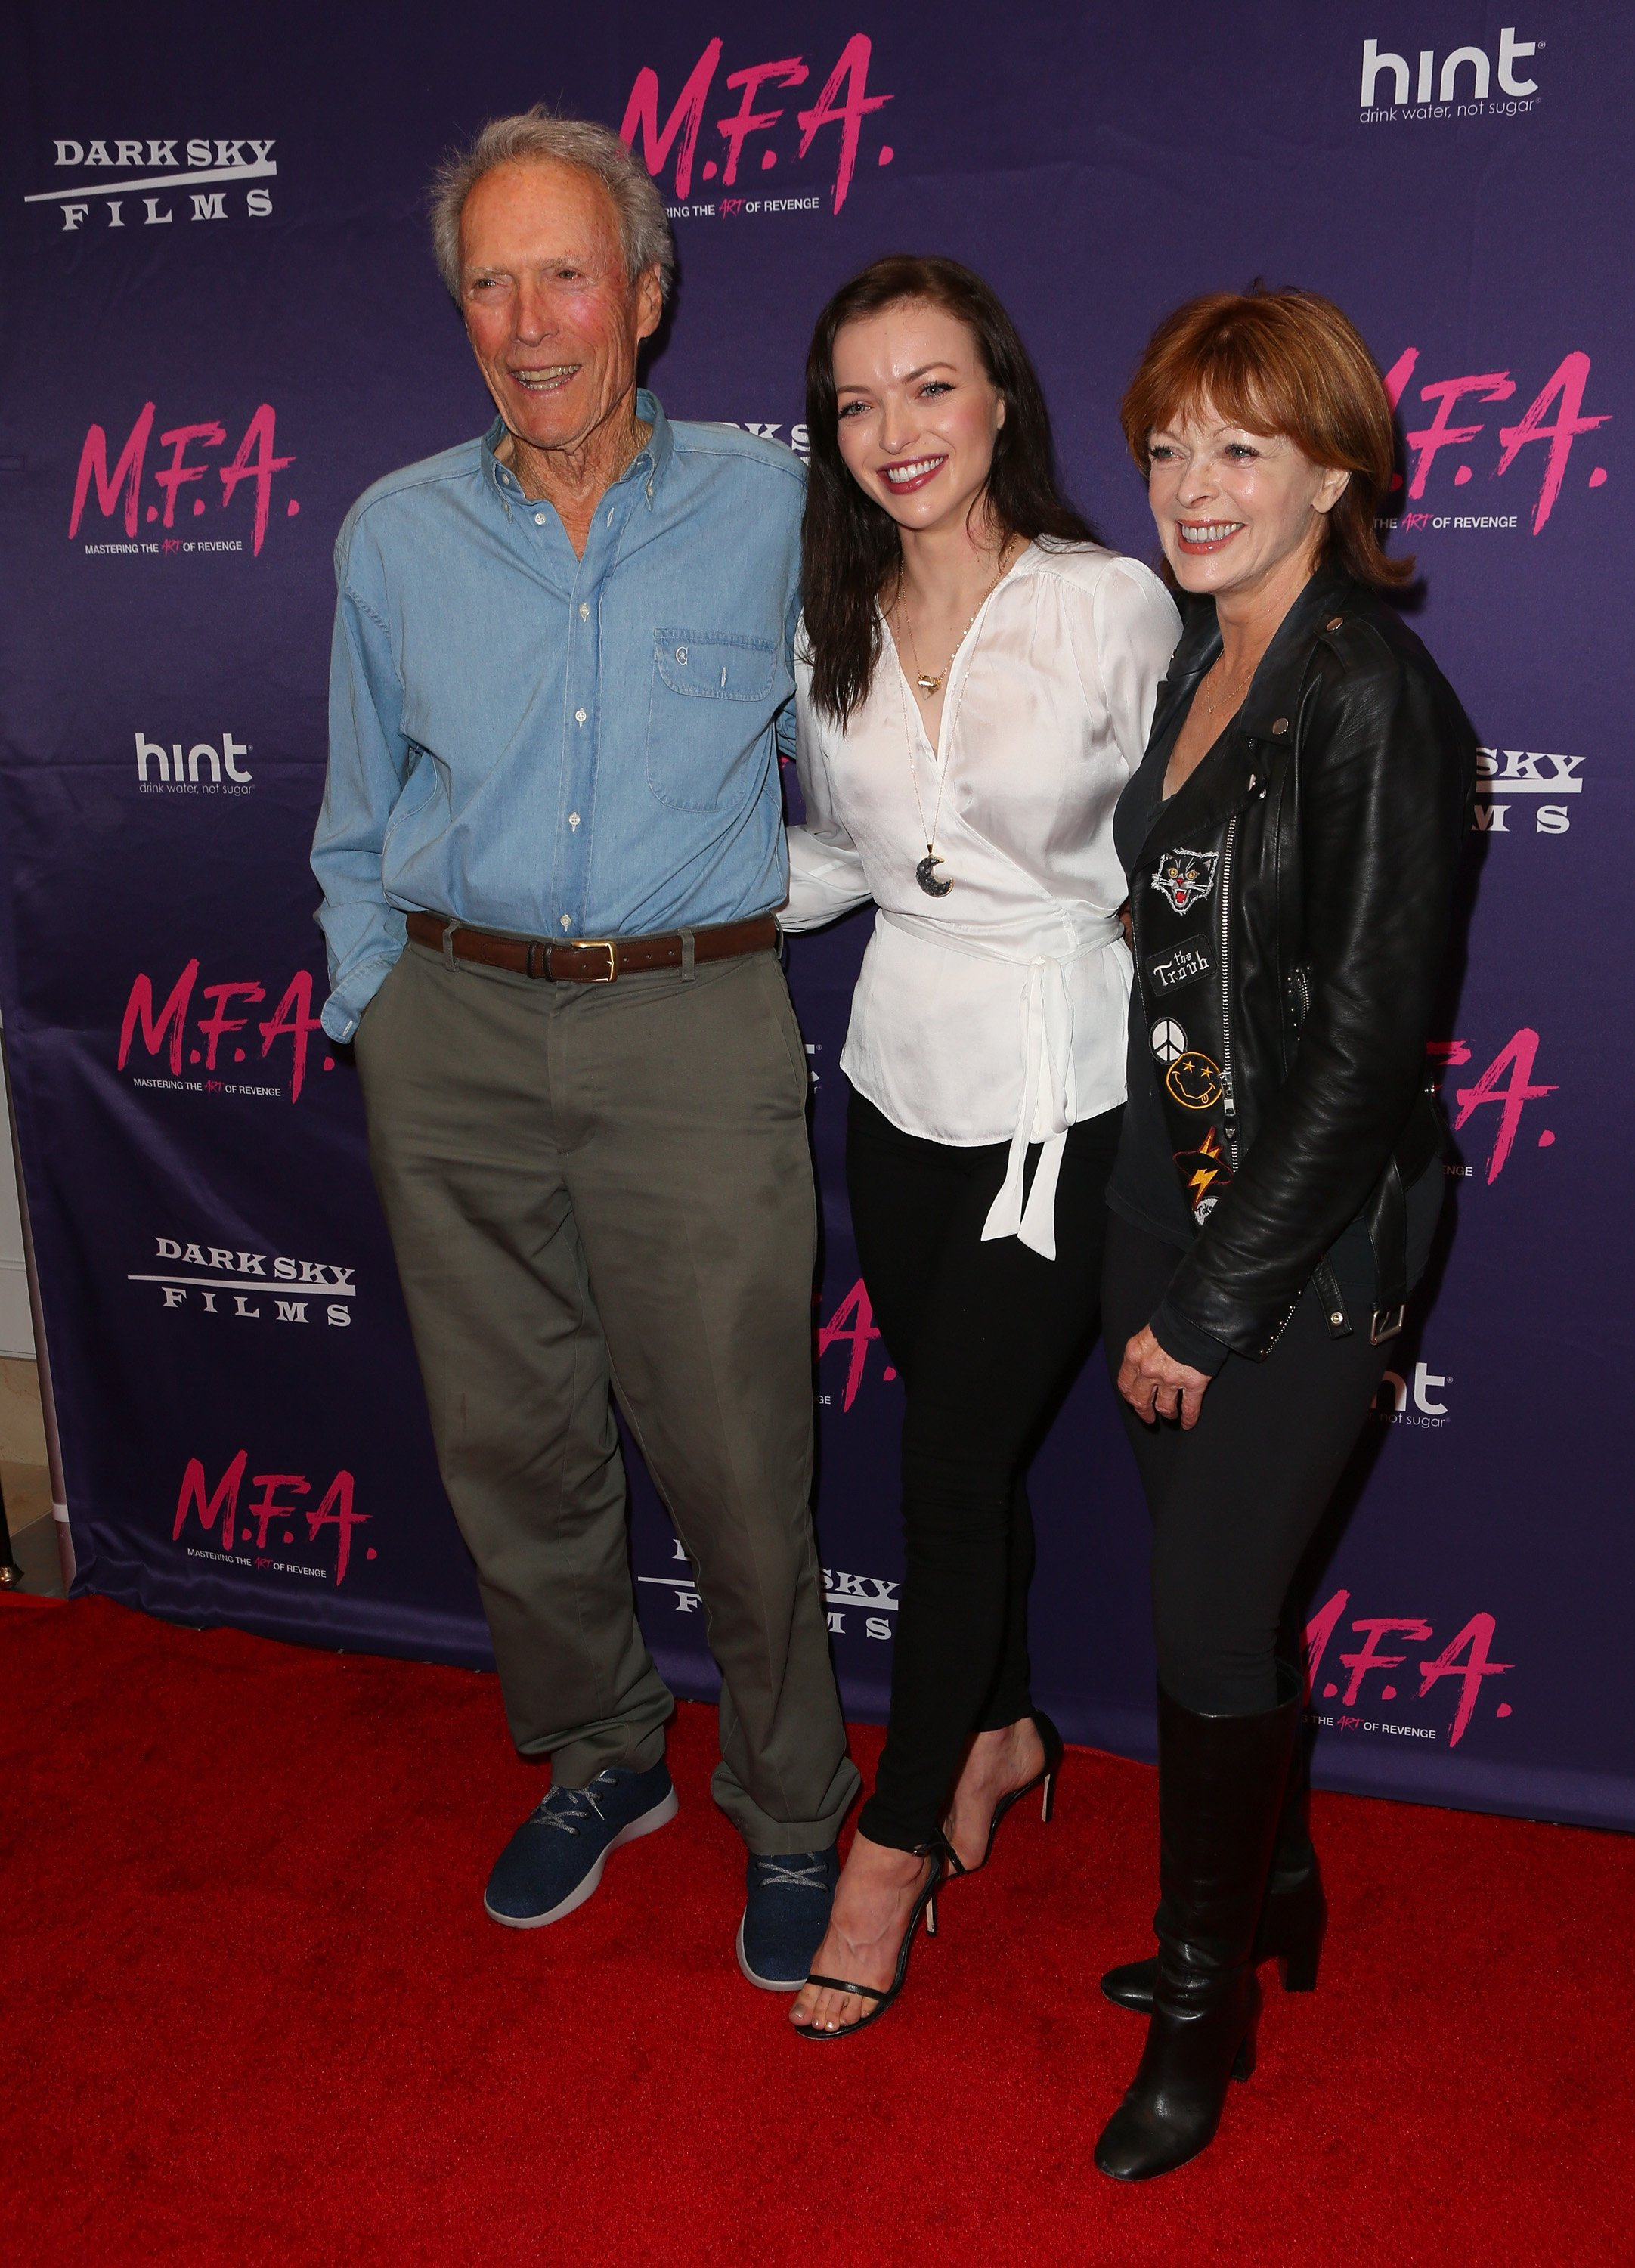 "Francesca Eastwood with her father, Clint Eastwood, and her mother, Frances Fisher at the premiere on Francesca's movie, ""M.F.A."", October 2017. 